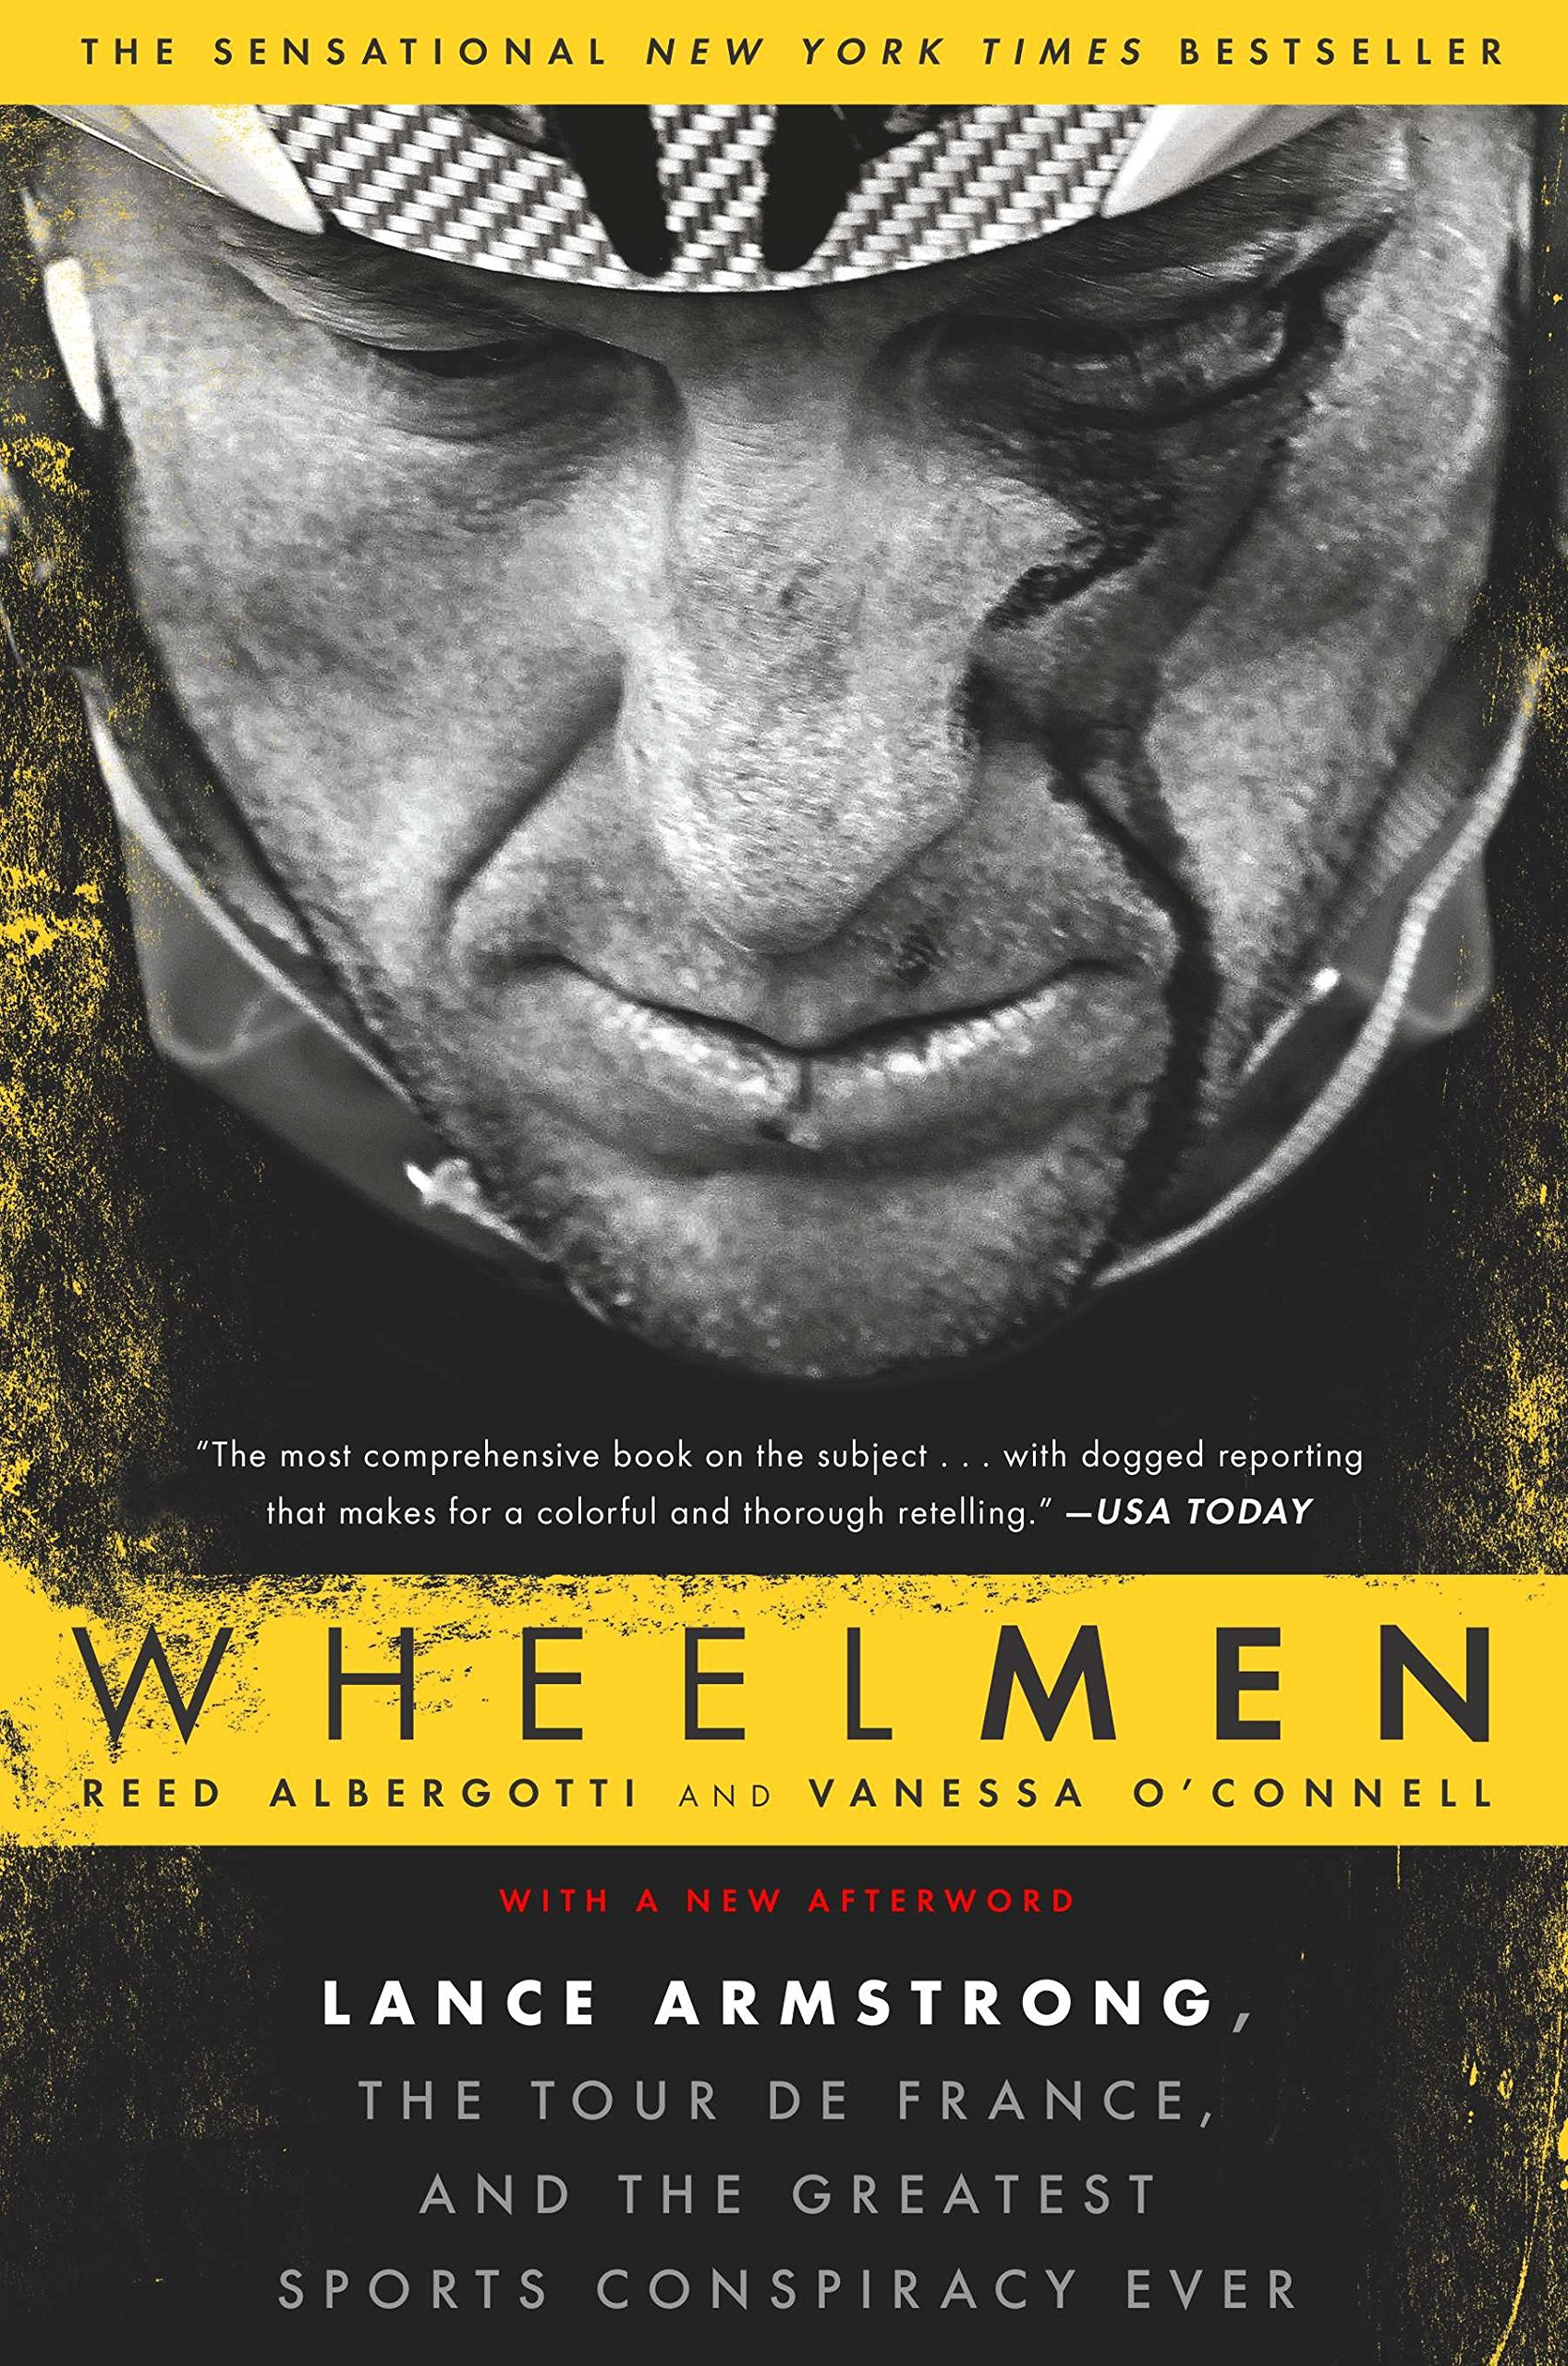 Wheelmen: Lance Armstrong, the Tour de France, and the Greatest Sports Conspiracy Ever Paperback – July 1, 2014 Reed Albergotti Vanessa O' Connell Avery 1592408885